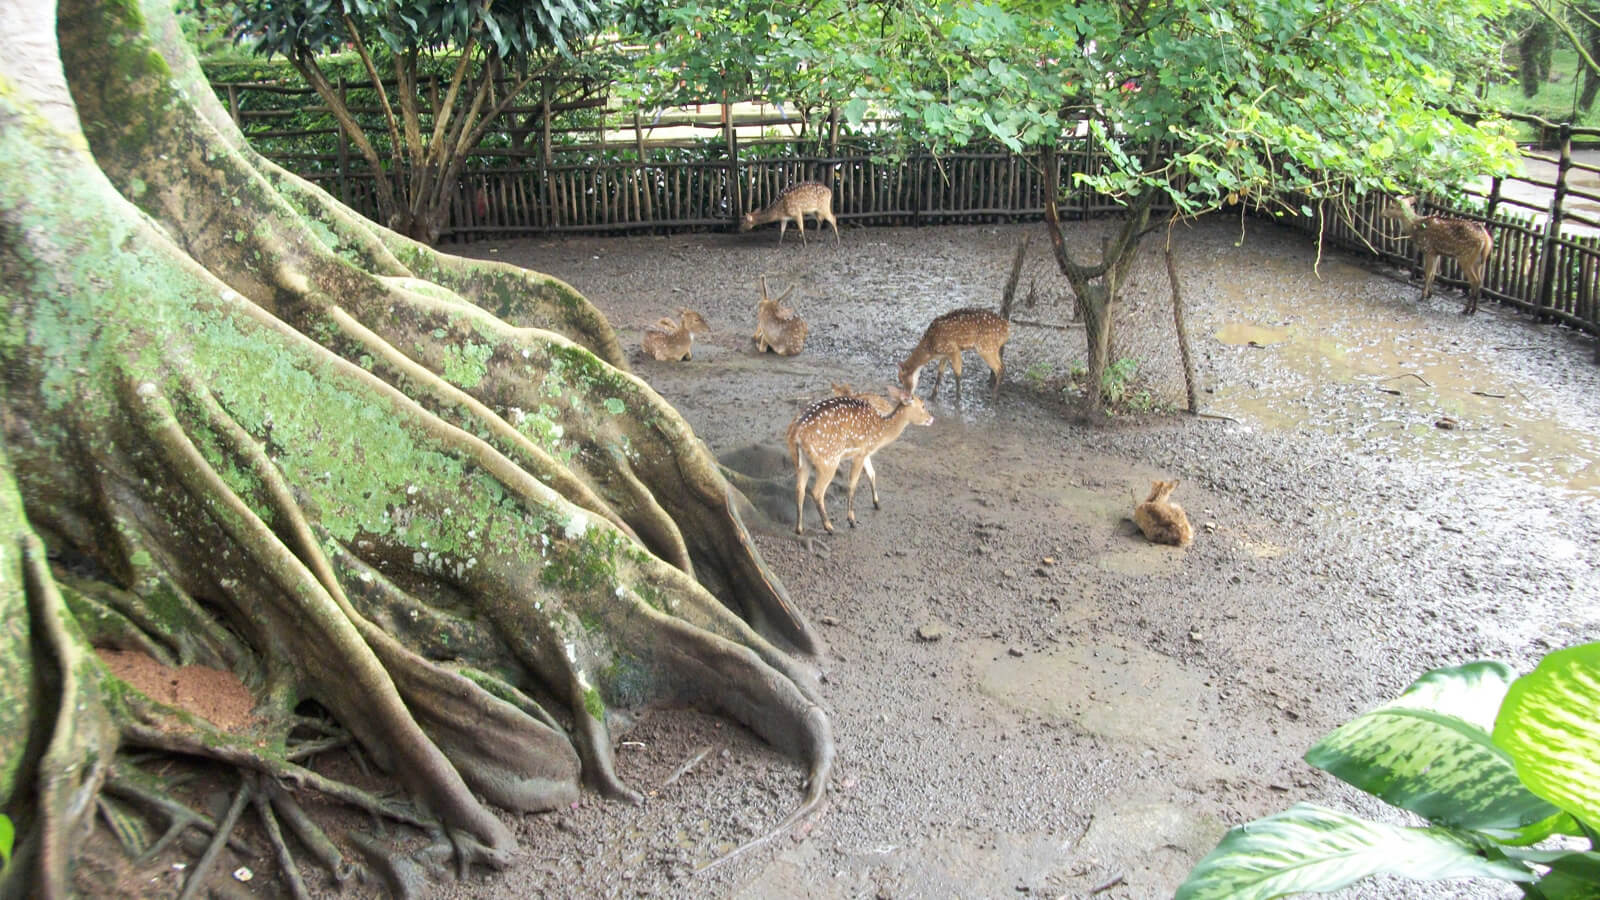 Muddy animals at Kebun Binatang Bandung Zoo